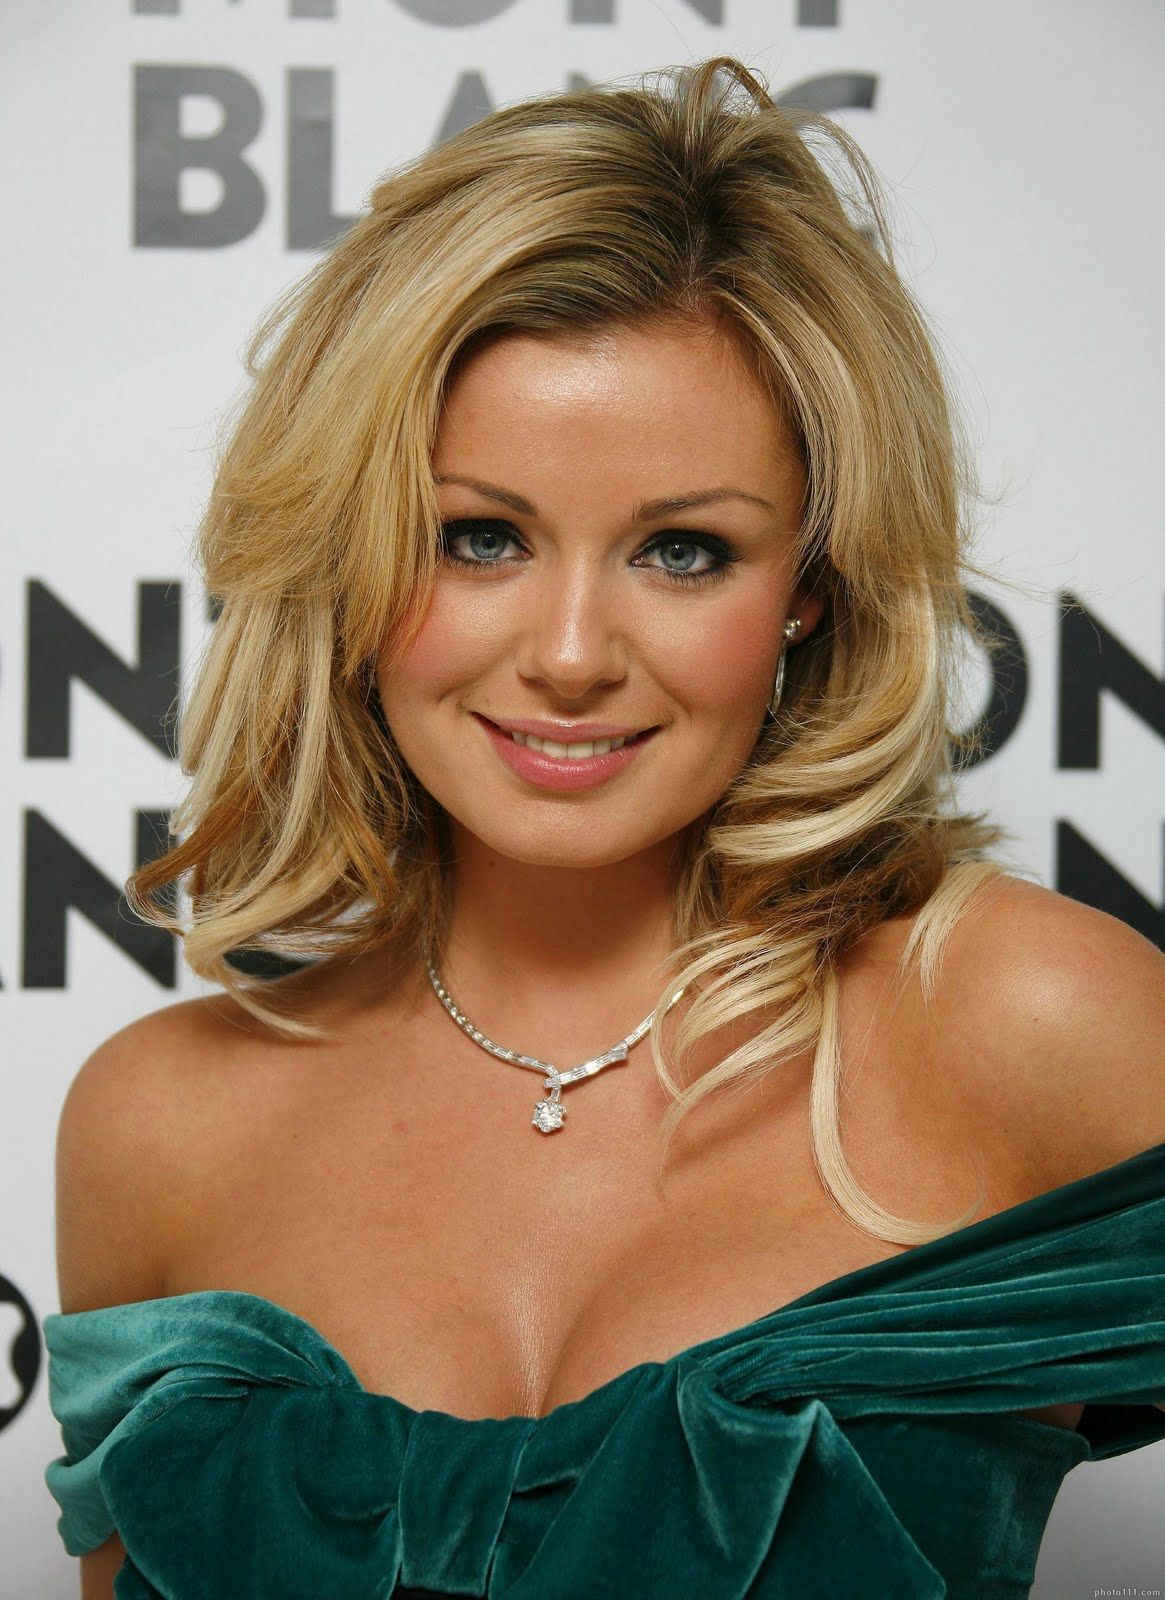 Snapchat Katherine Jenkins nudes (77 foto and video), Tits, Paparazzi, Twitter, swimsuit 2006